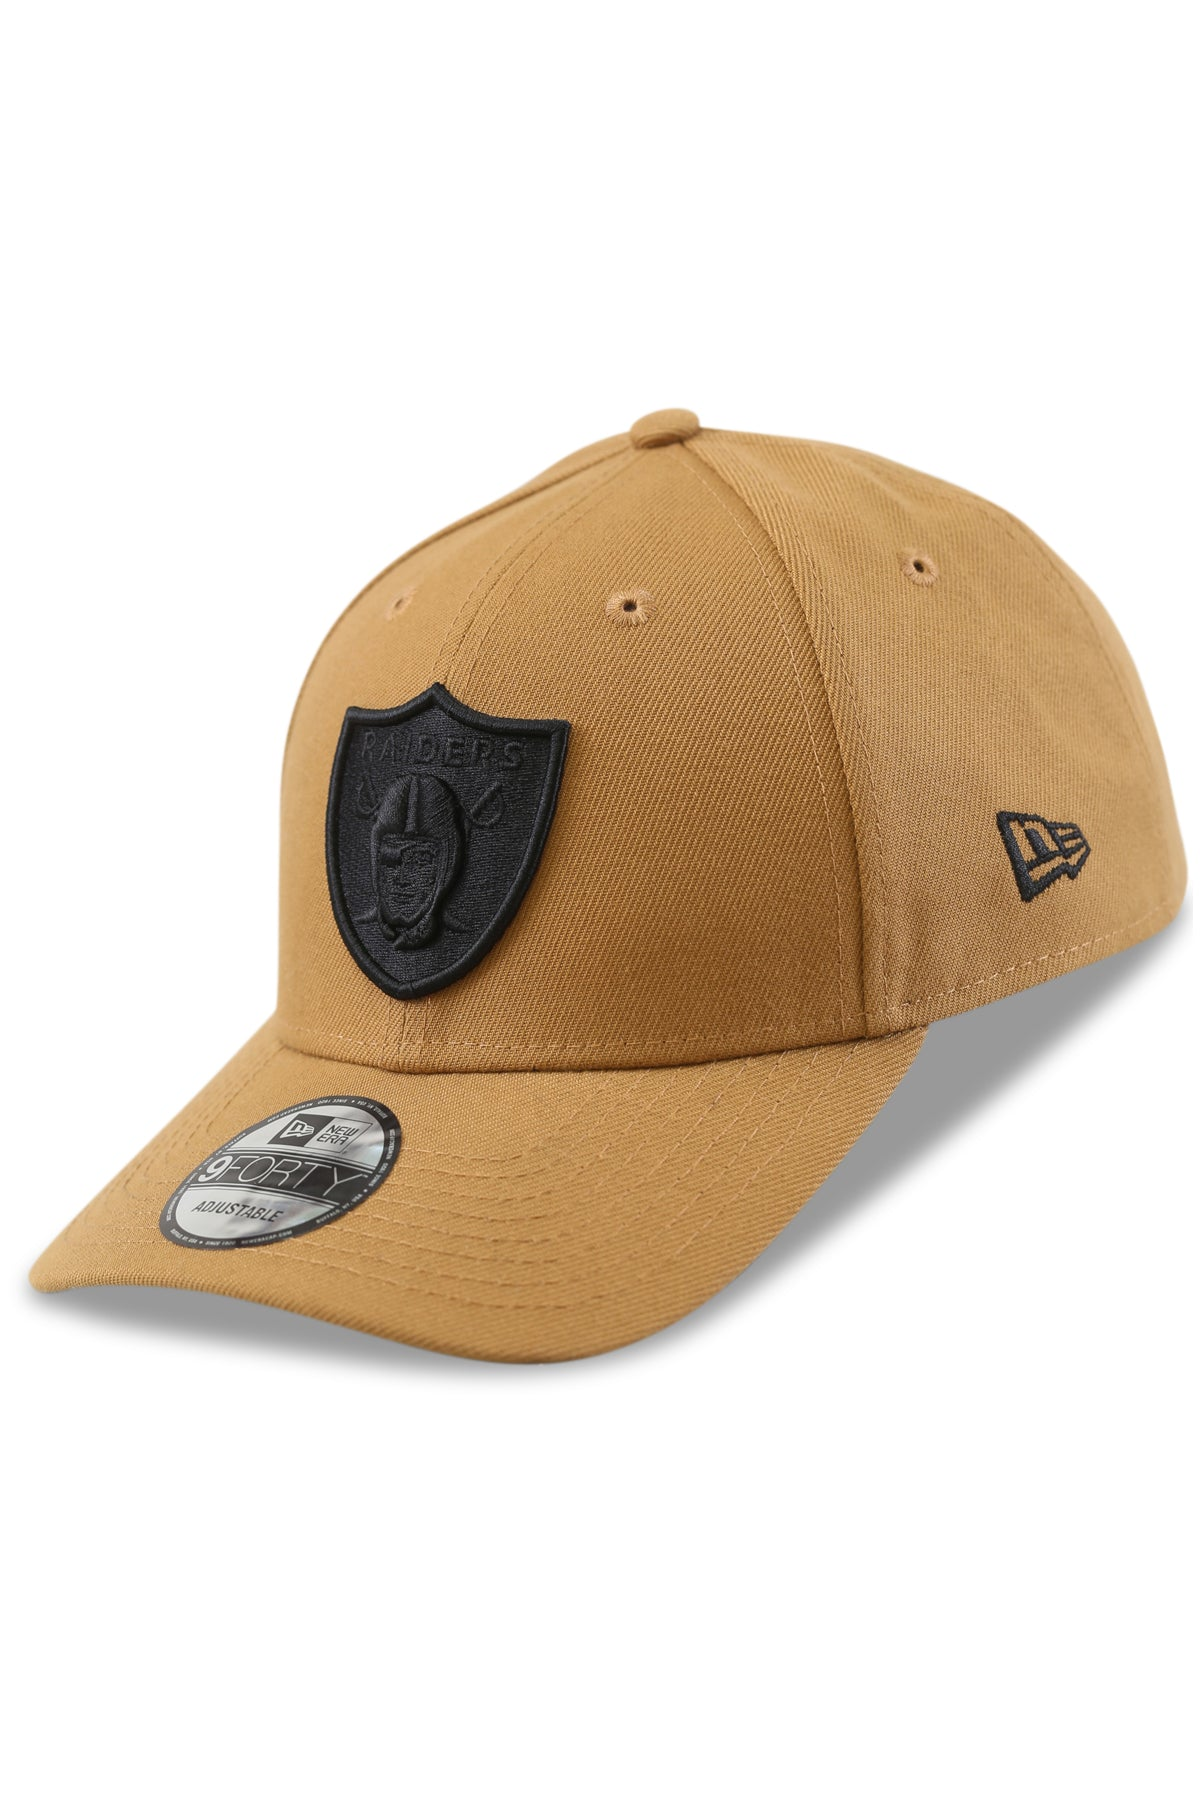 New Era 940 LV Raiders Wheat/Black Snapback Angle